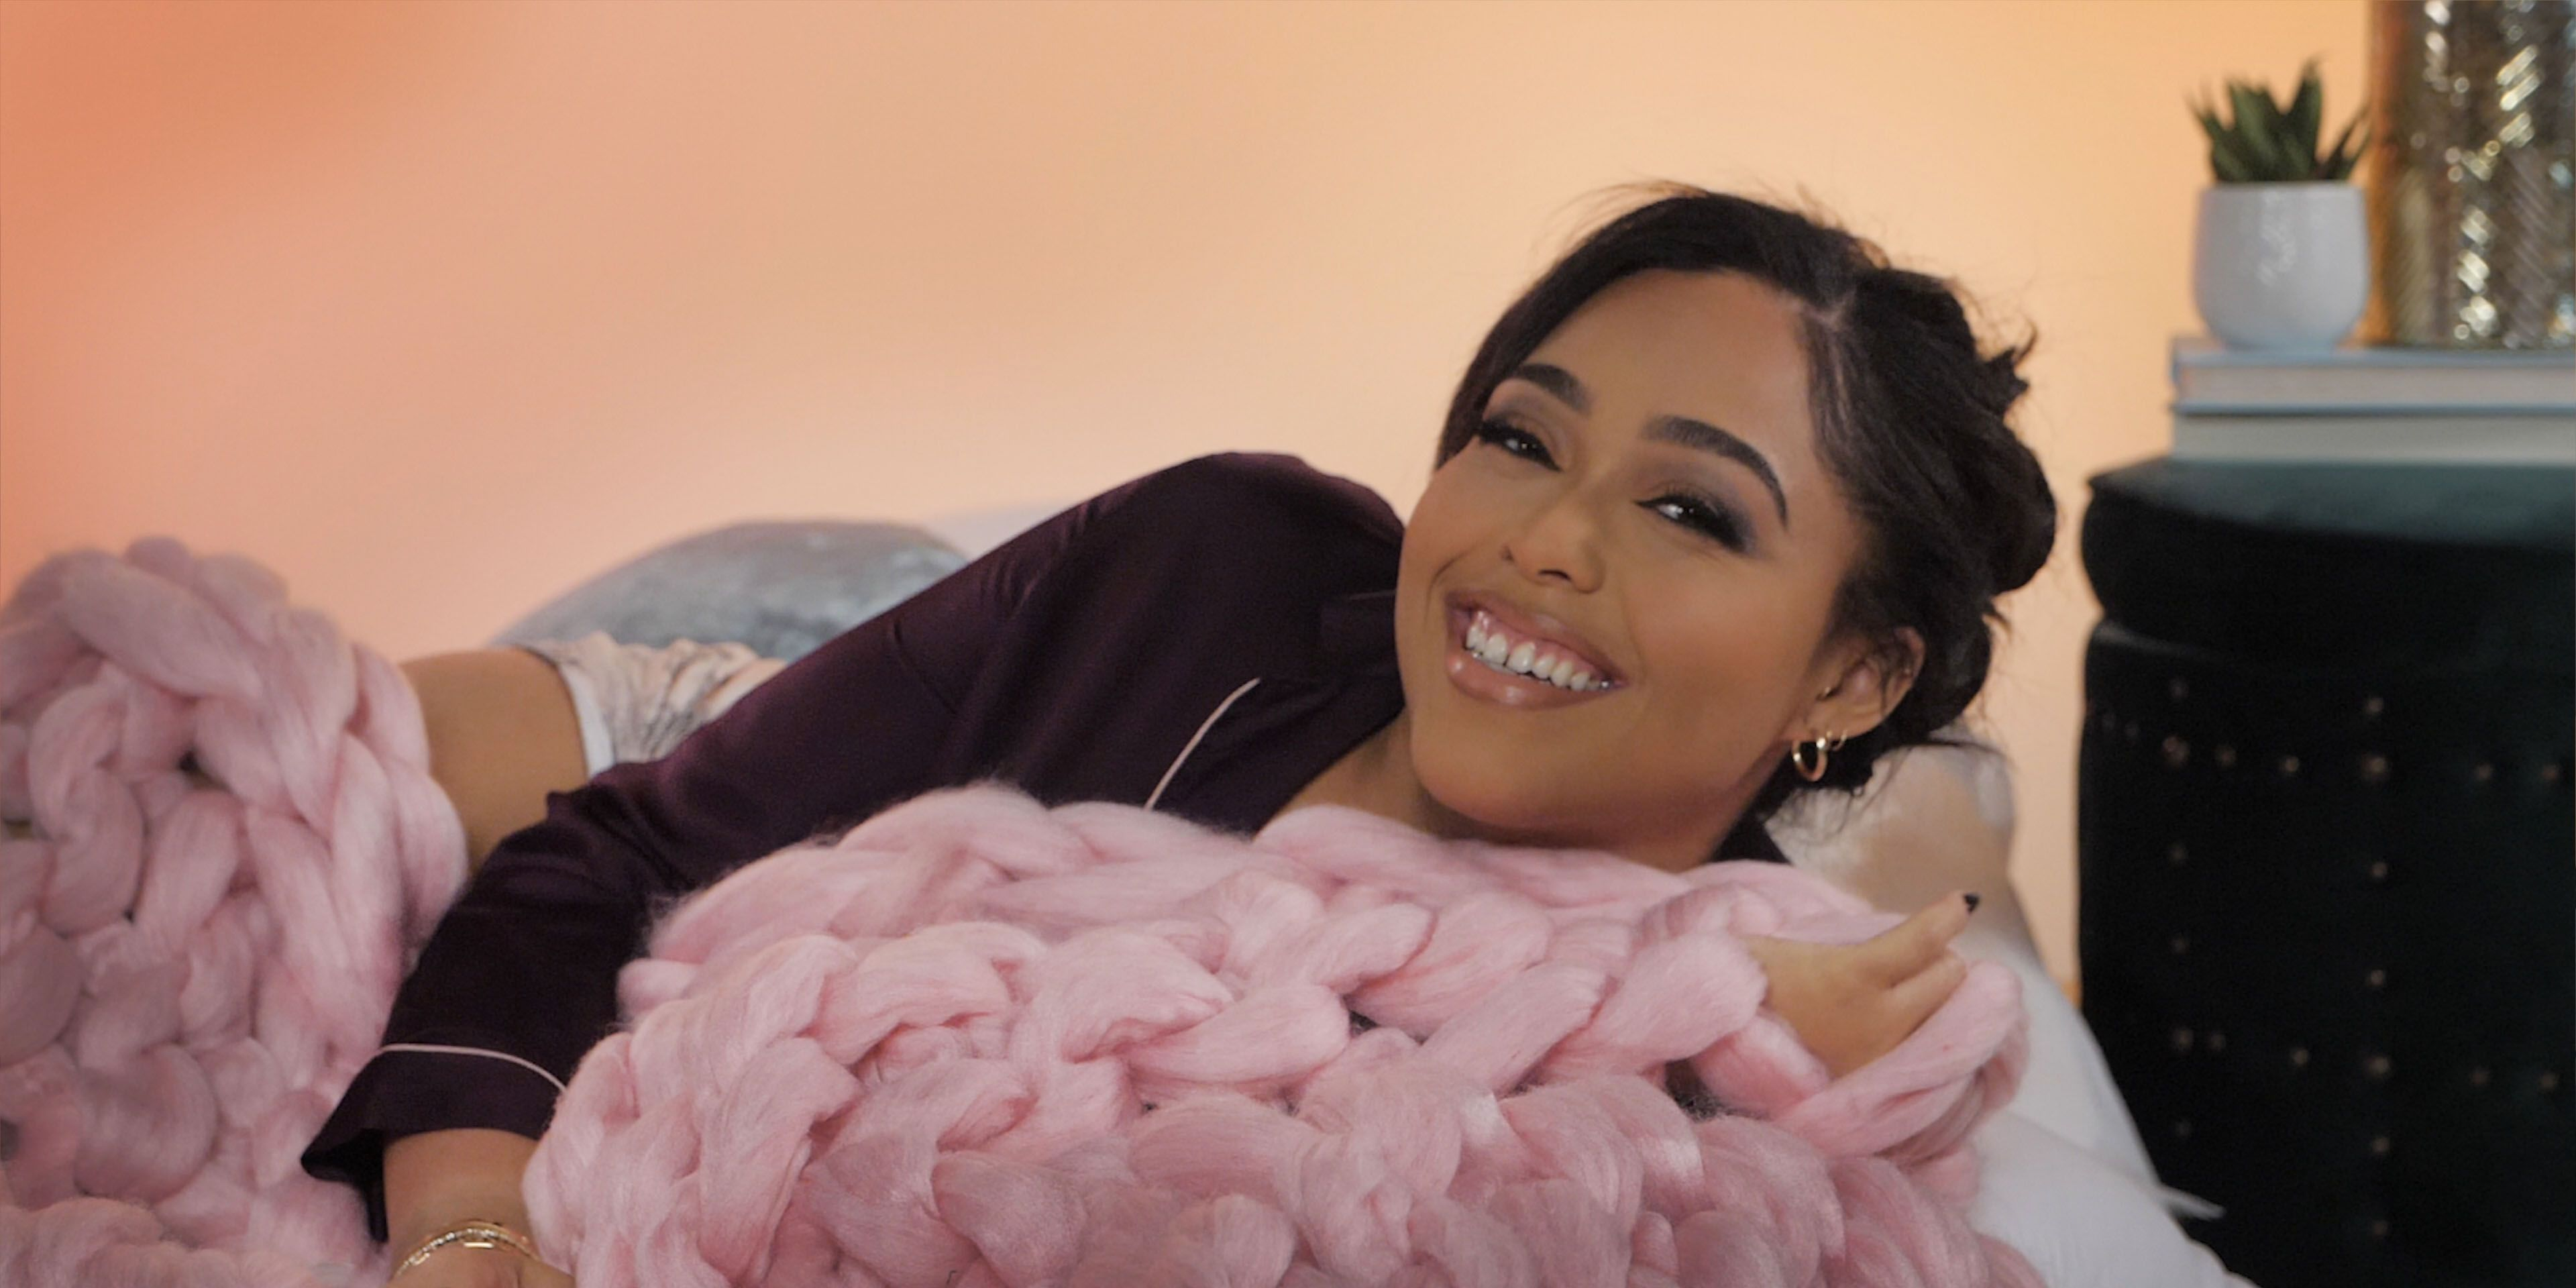 Cosmo Goes Under the Covers with Jordyn Woods